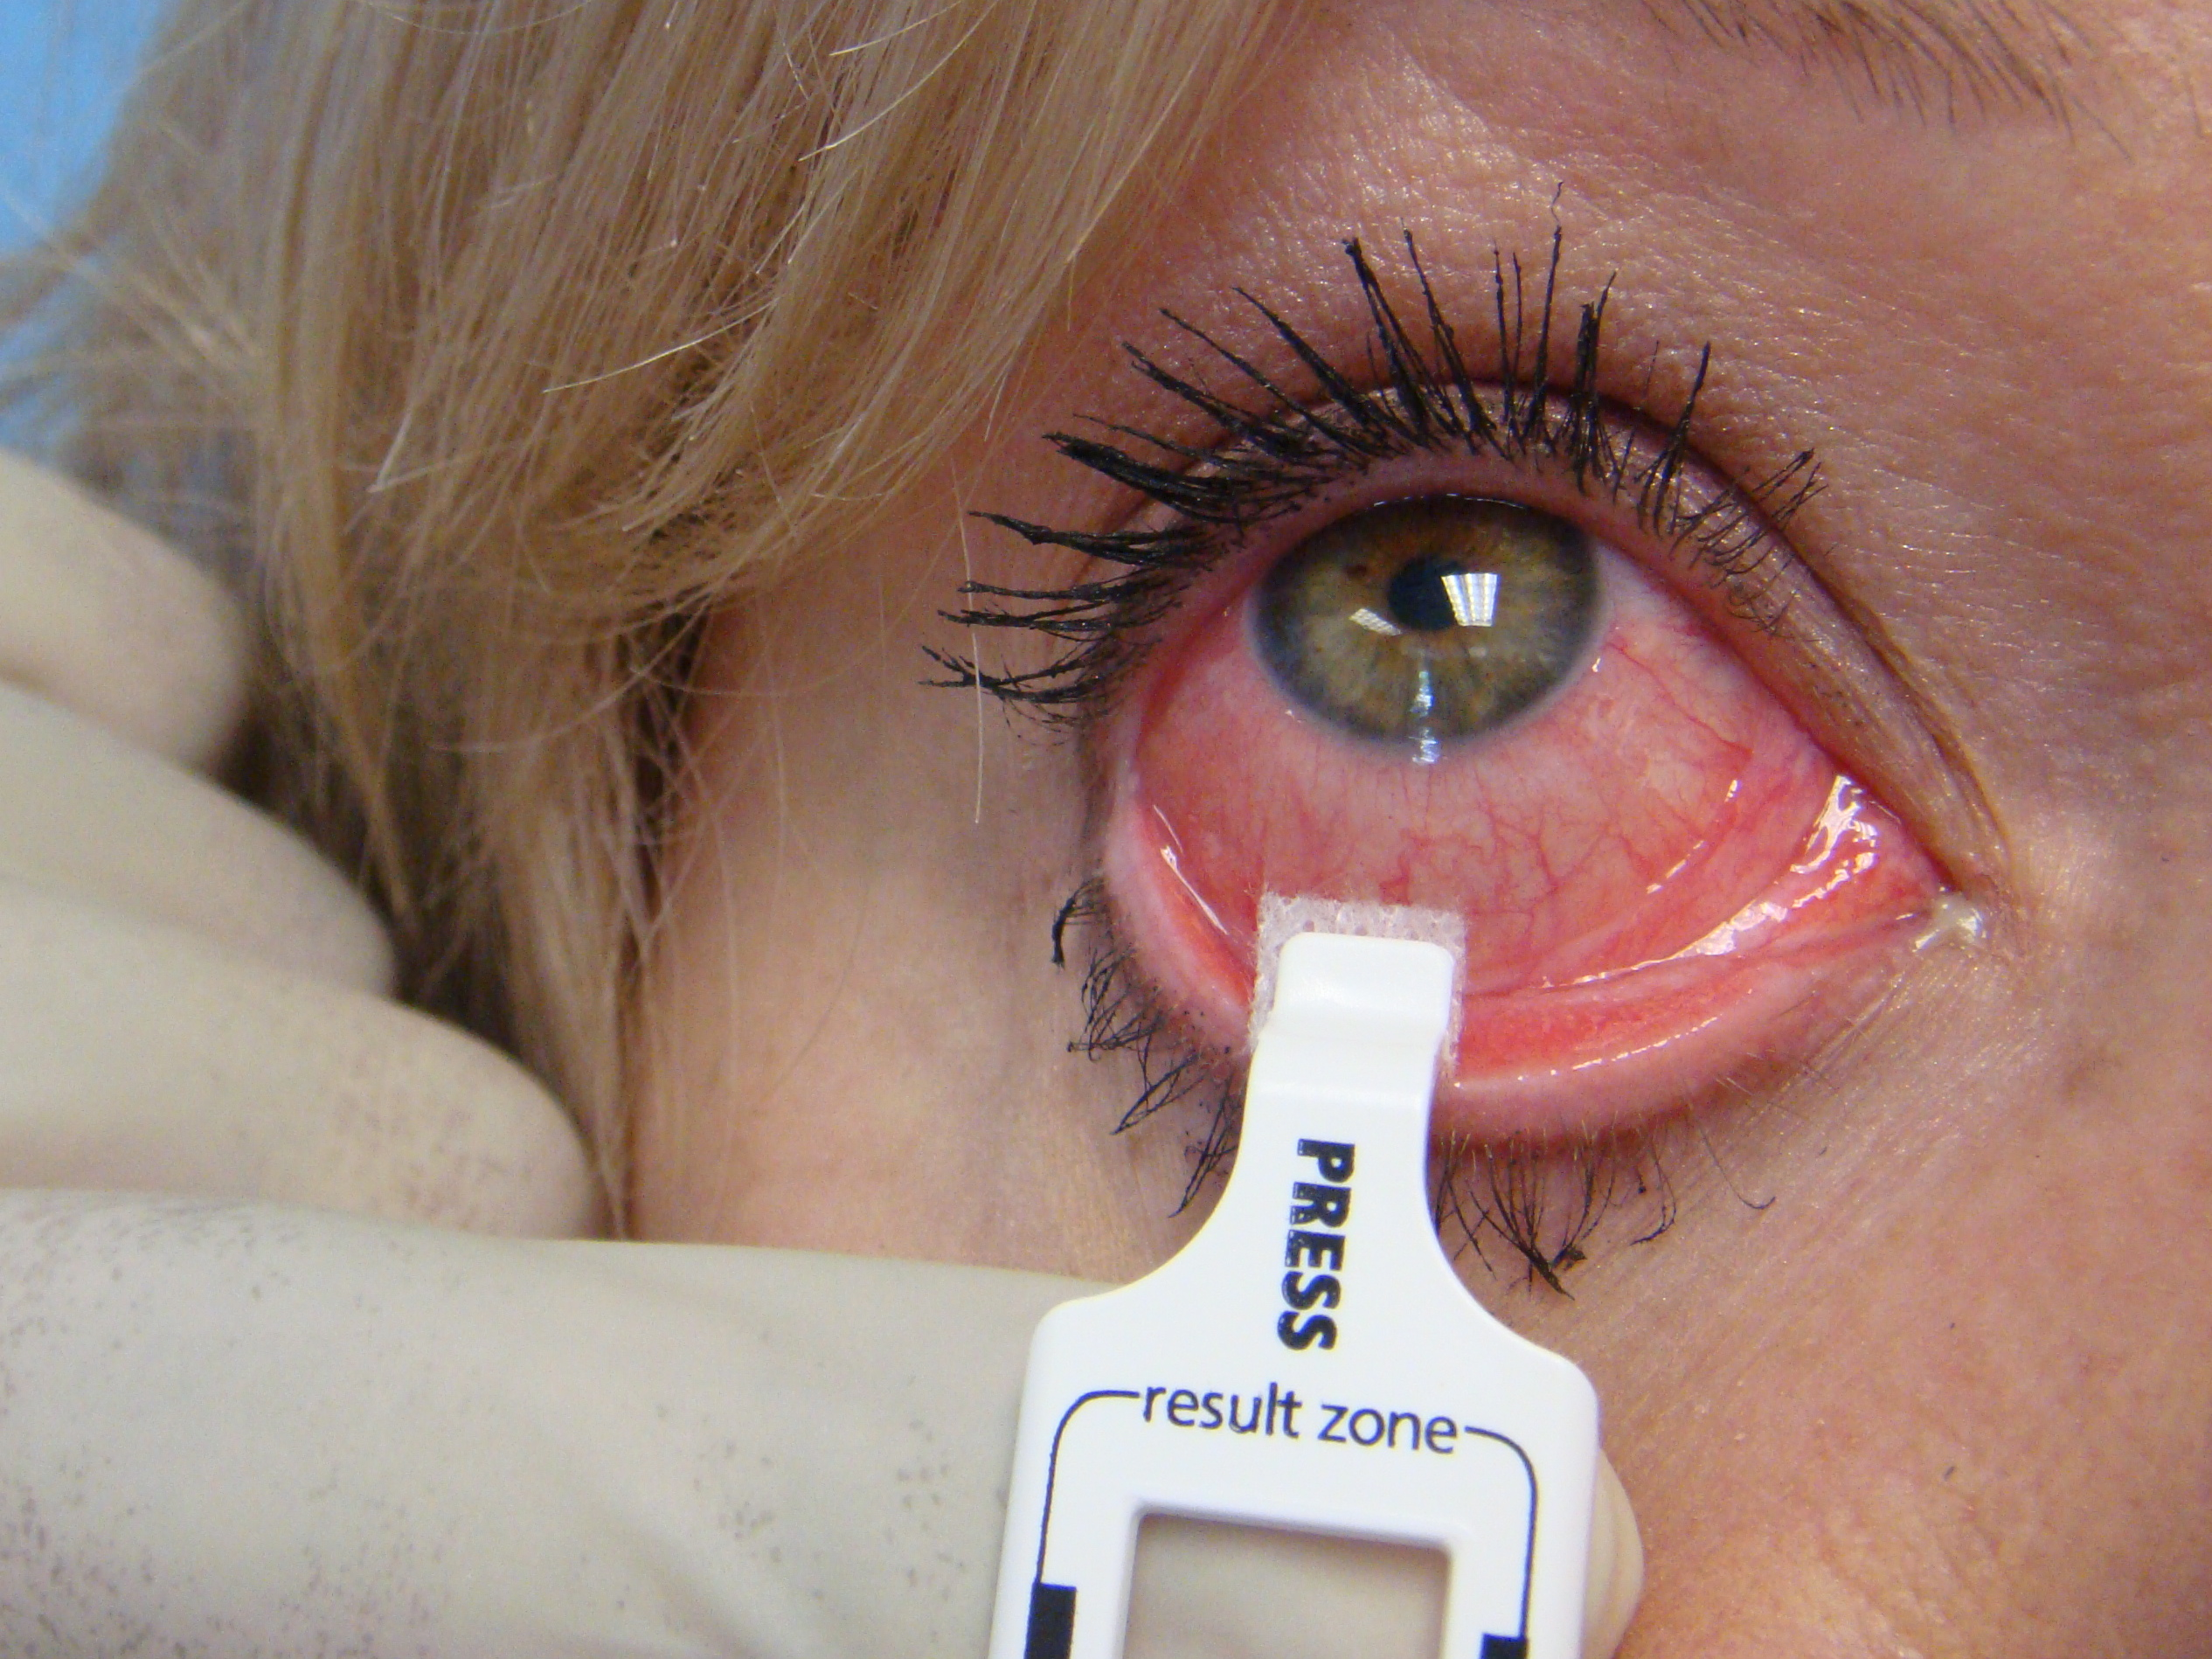 Home Care For Viral Conjunctivitis